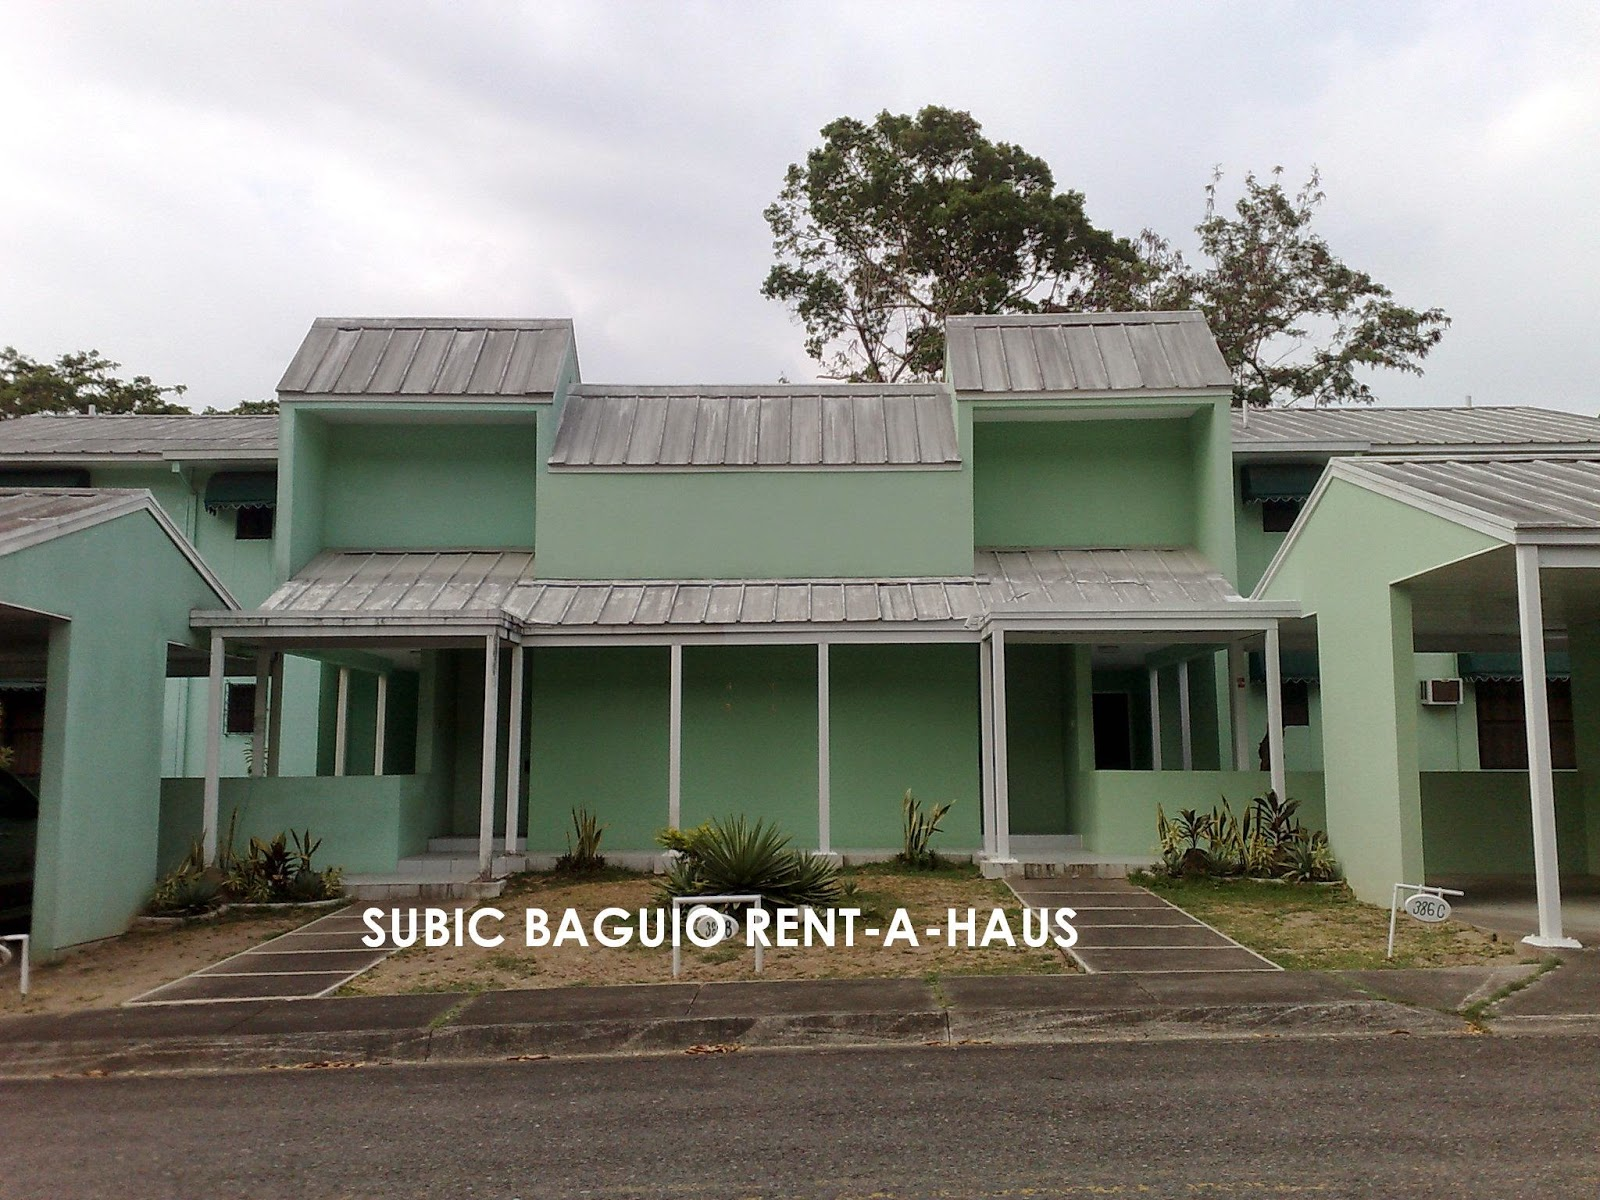 3 Bedroom Subic House For Daily Rent In Subic Bay